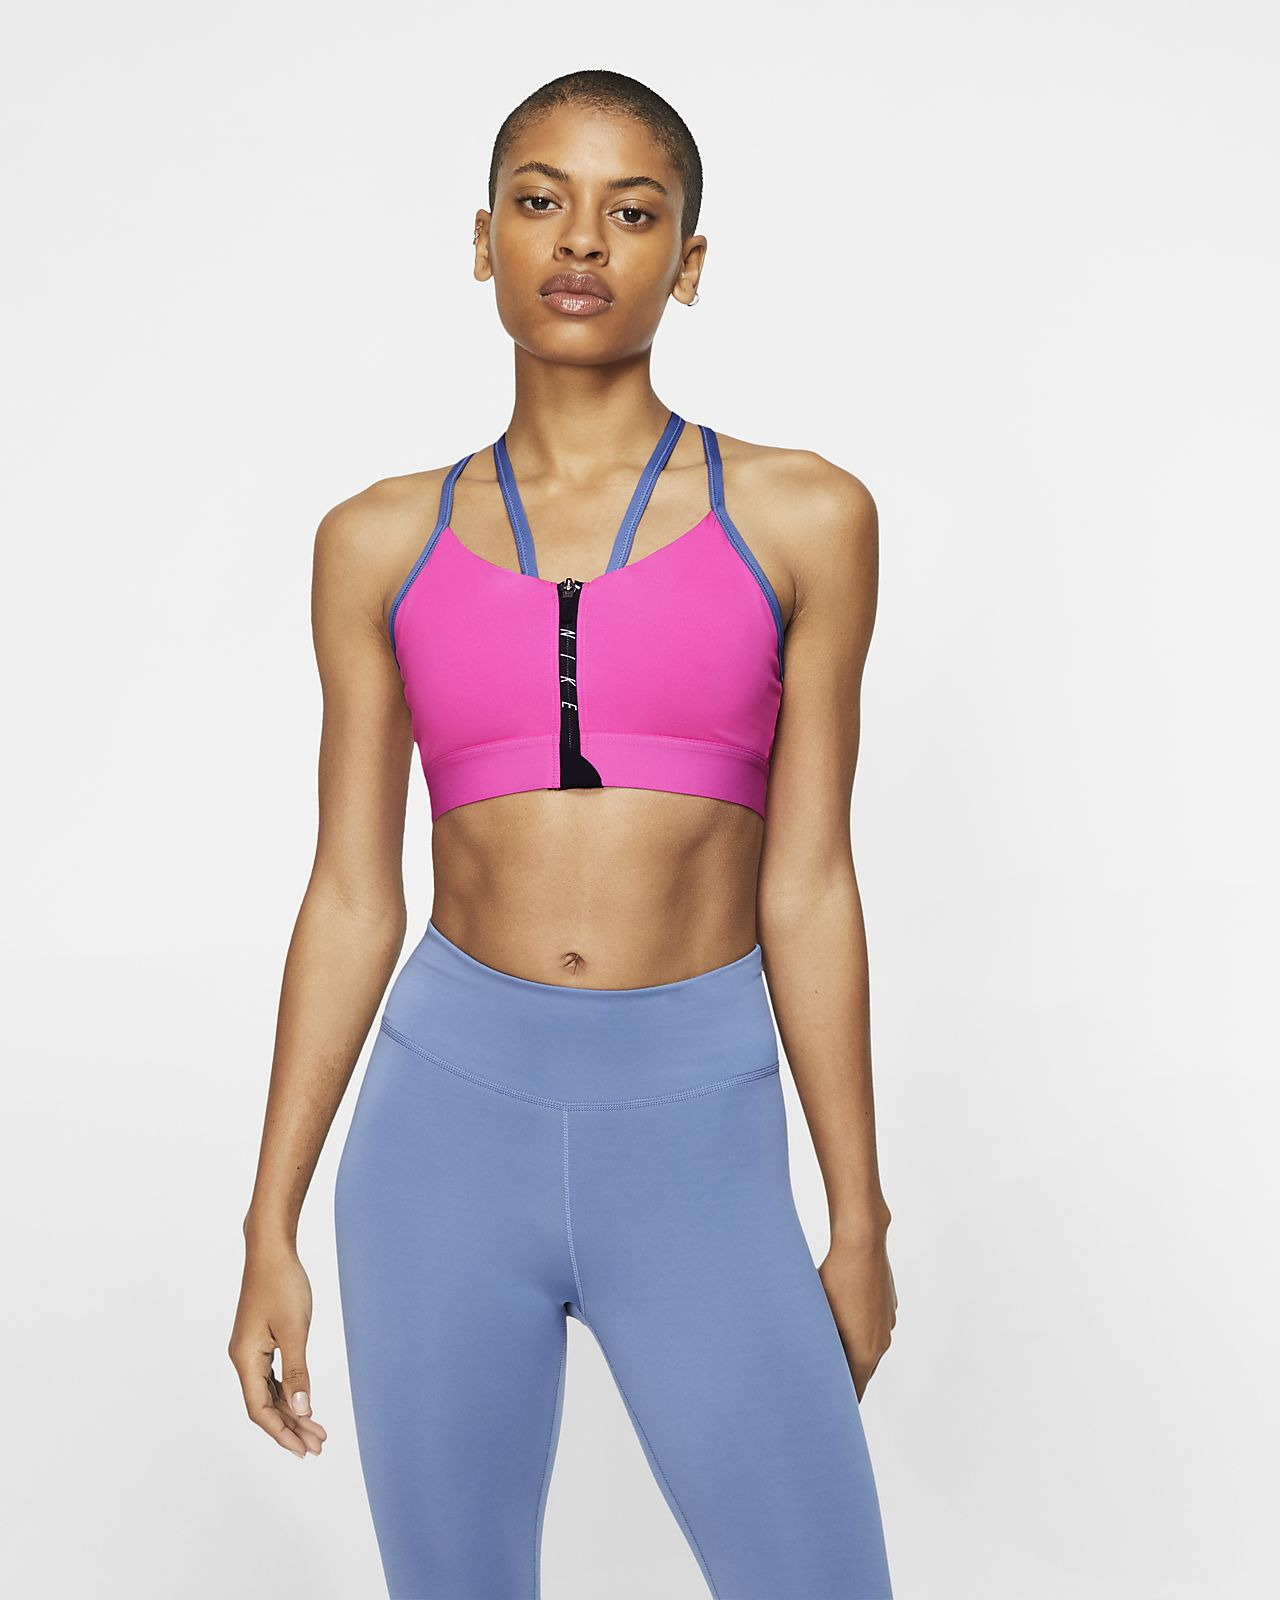 Nike Indy Women's Zip Light-Support Sports Bra